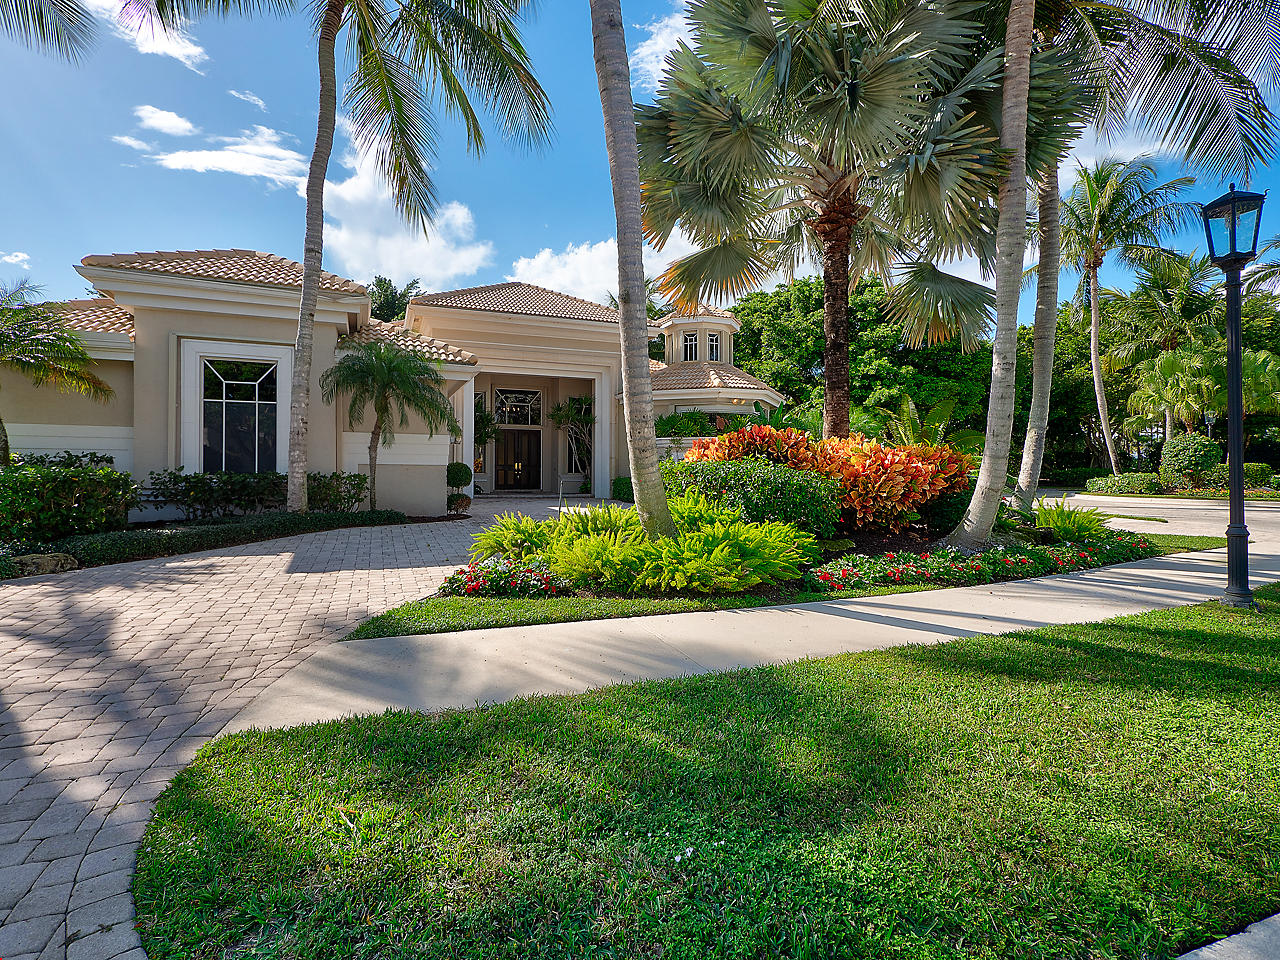 Home for sale in Saint Martin Palm Beach Gardens Florida